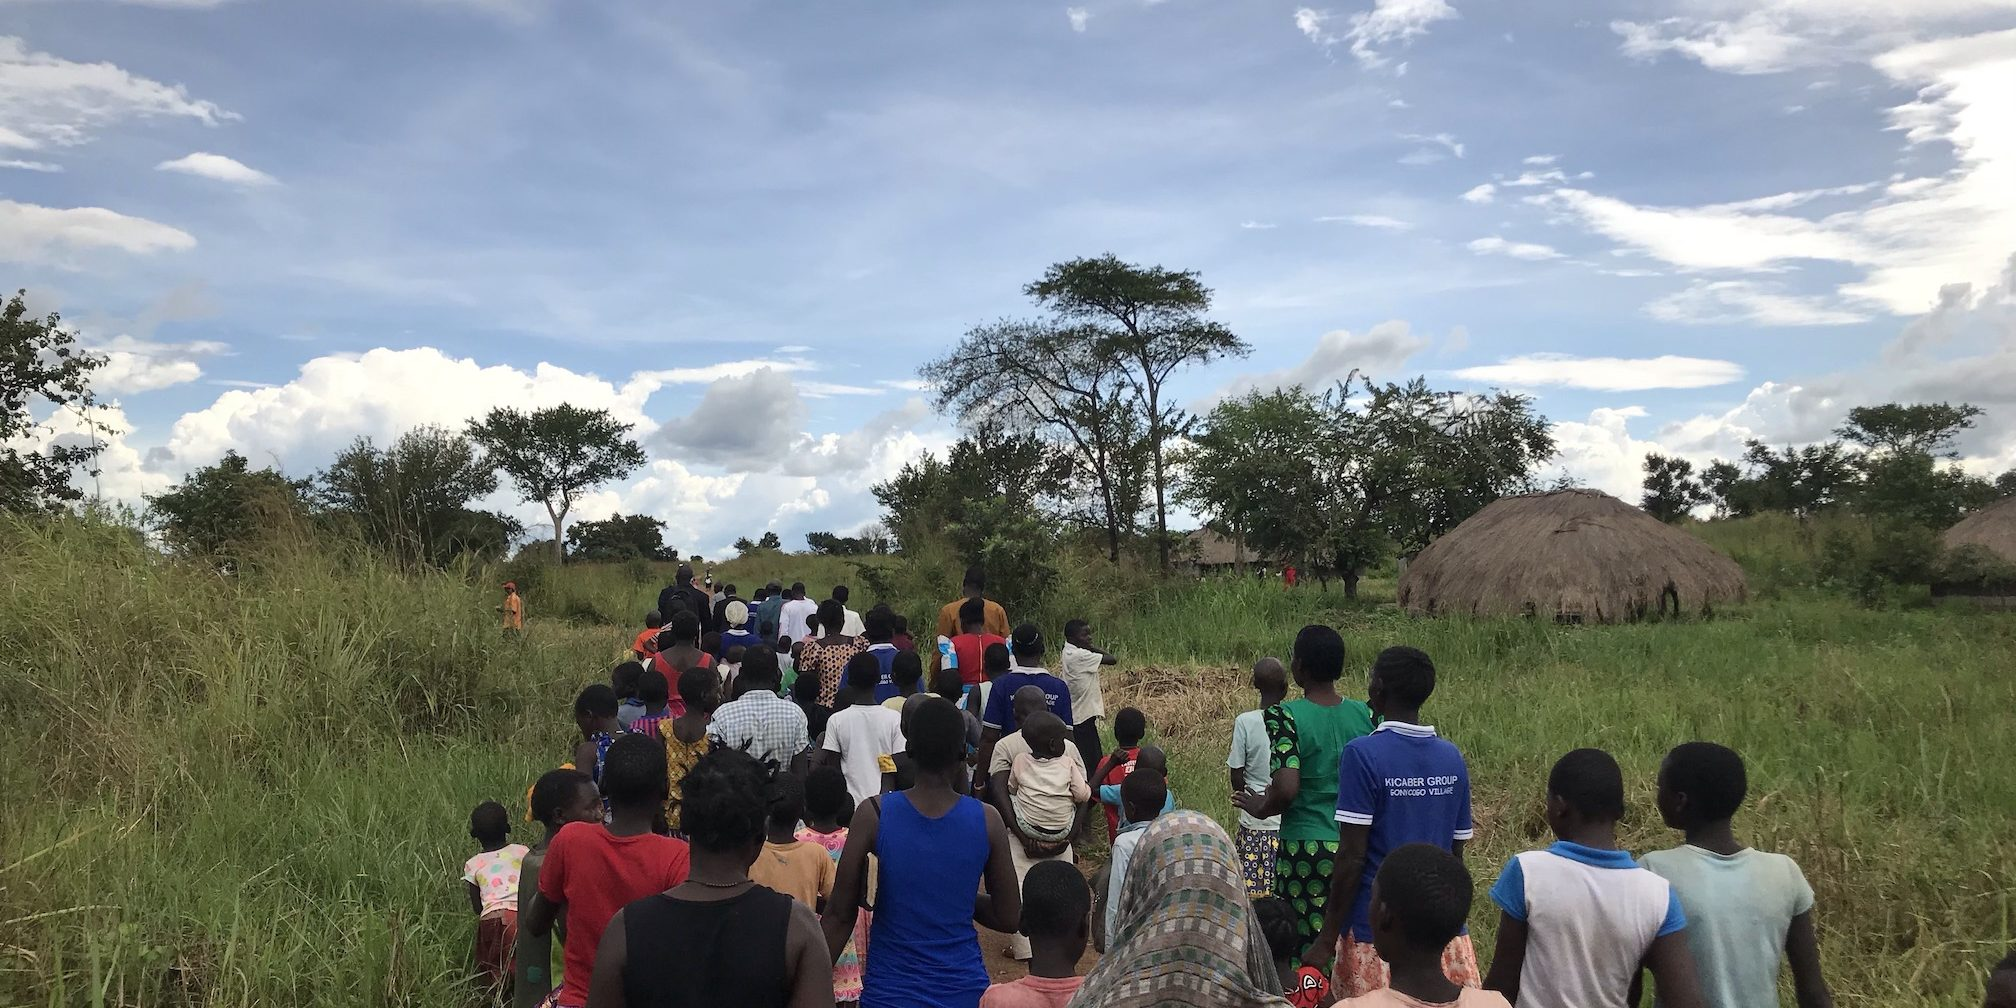 The people of the villages gather to walk to the new clean water well.